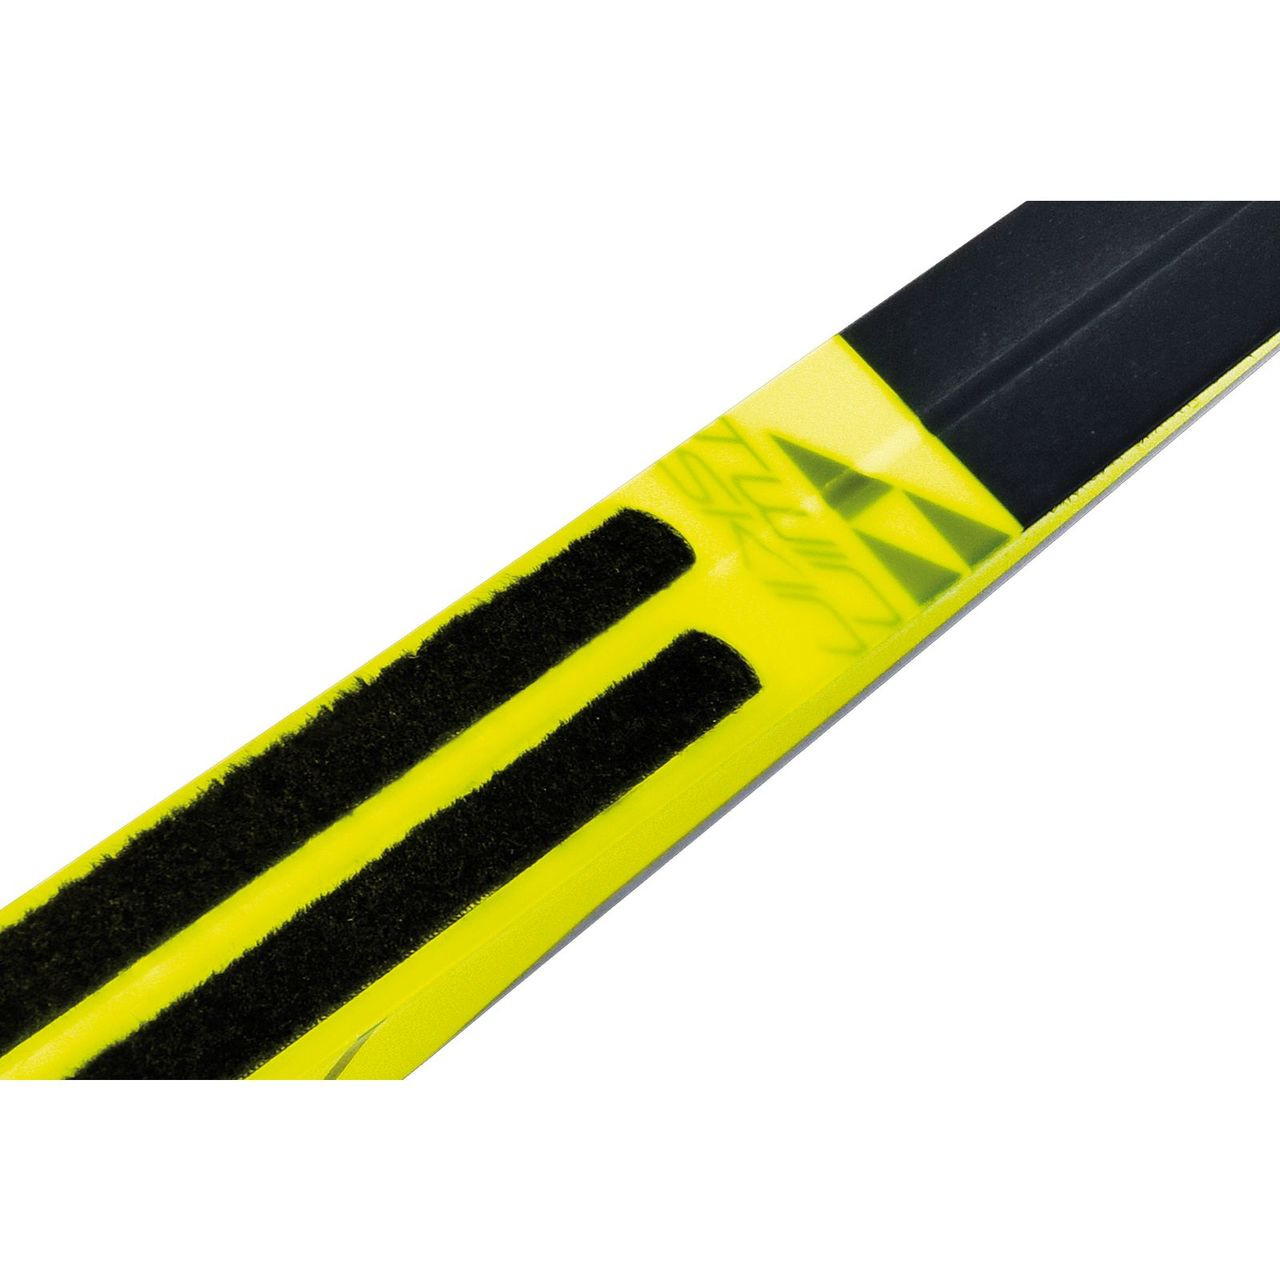 Fischer Twin Skin Pro Yellow Replacement Skins